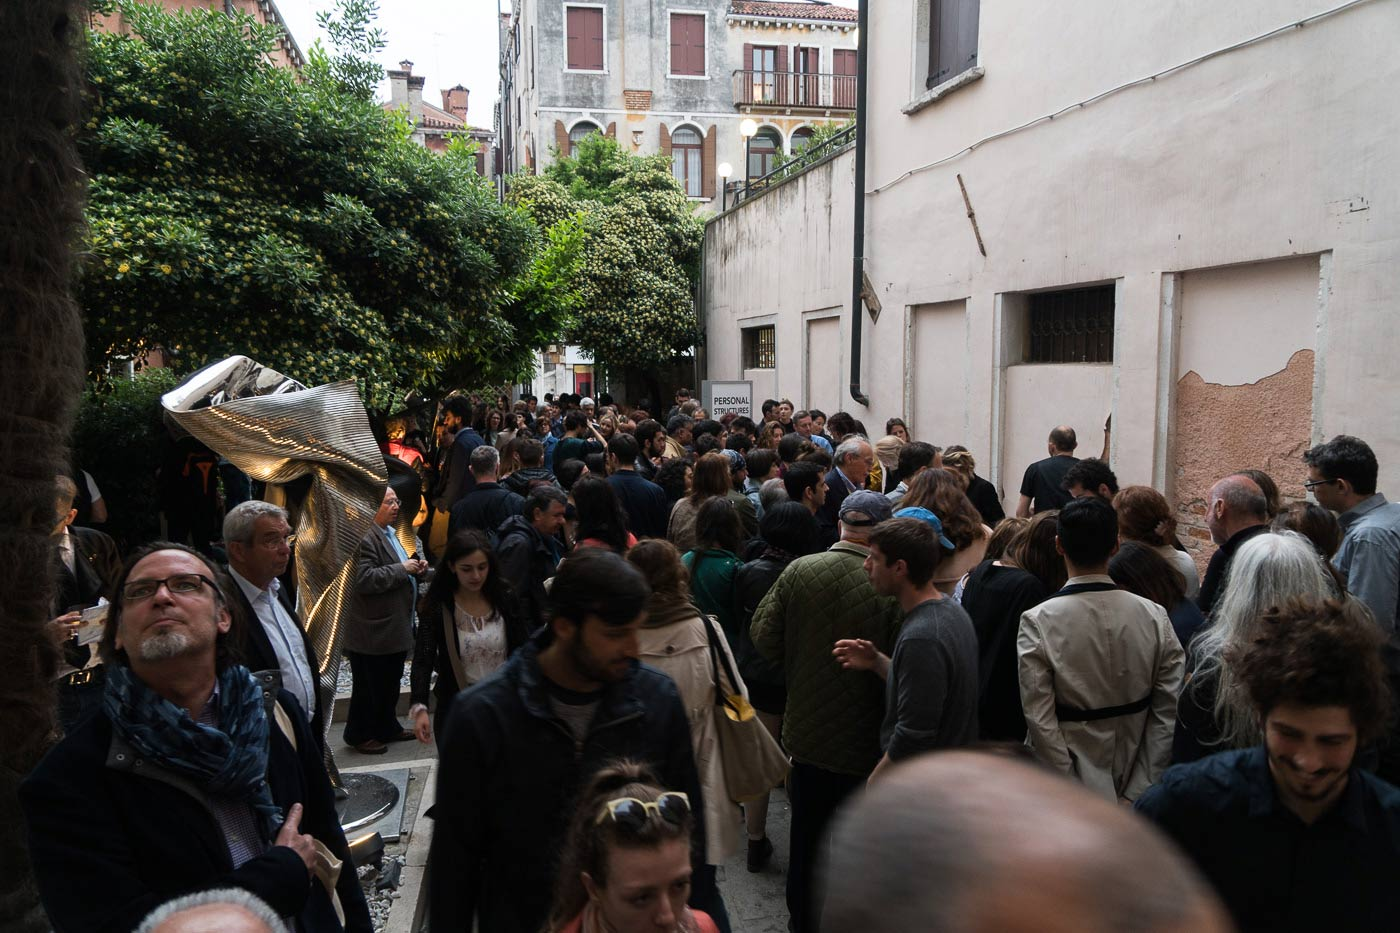 People at the opening of Venice exhibition